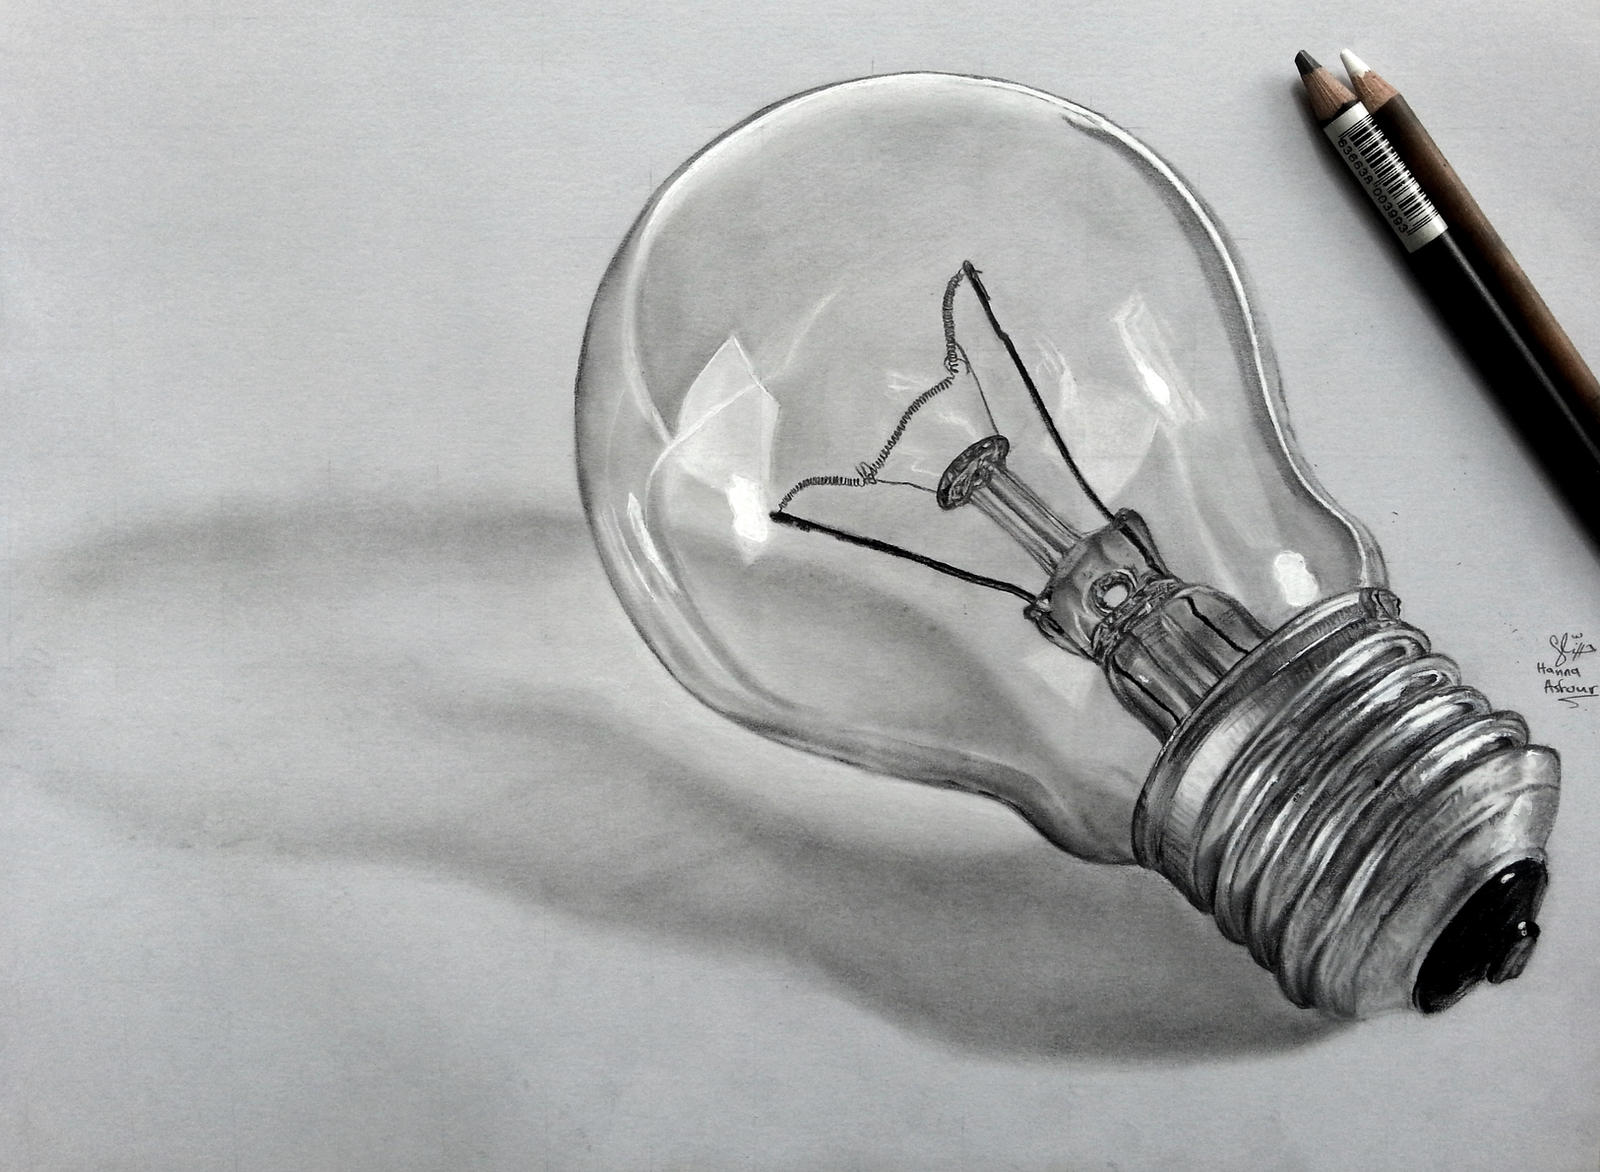 Ligh Bulb pencil drawing by Hannaasfour